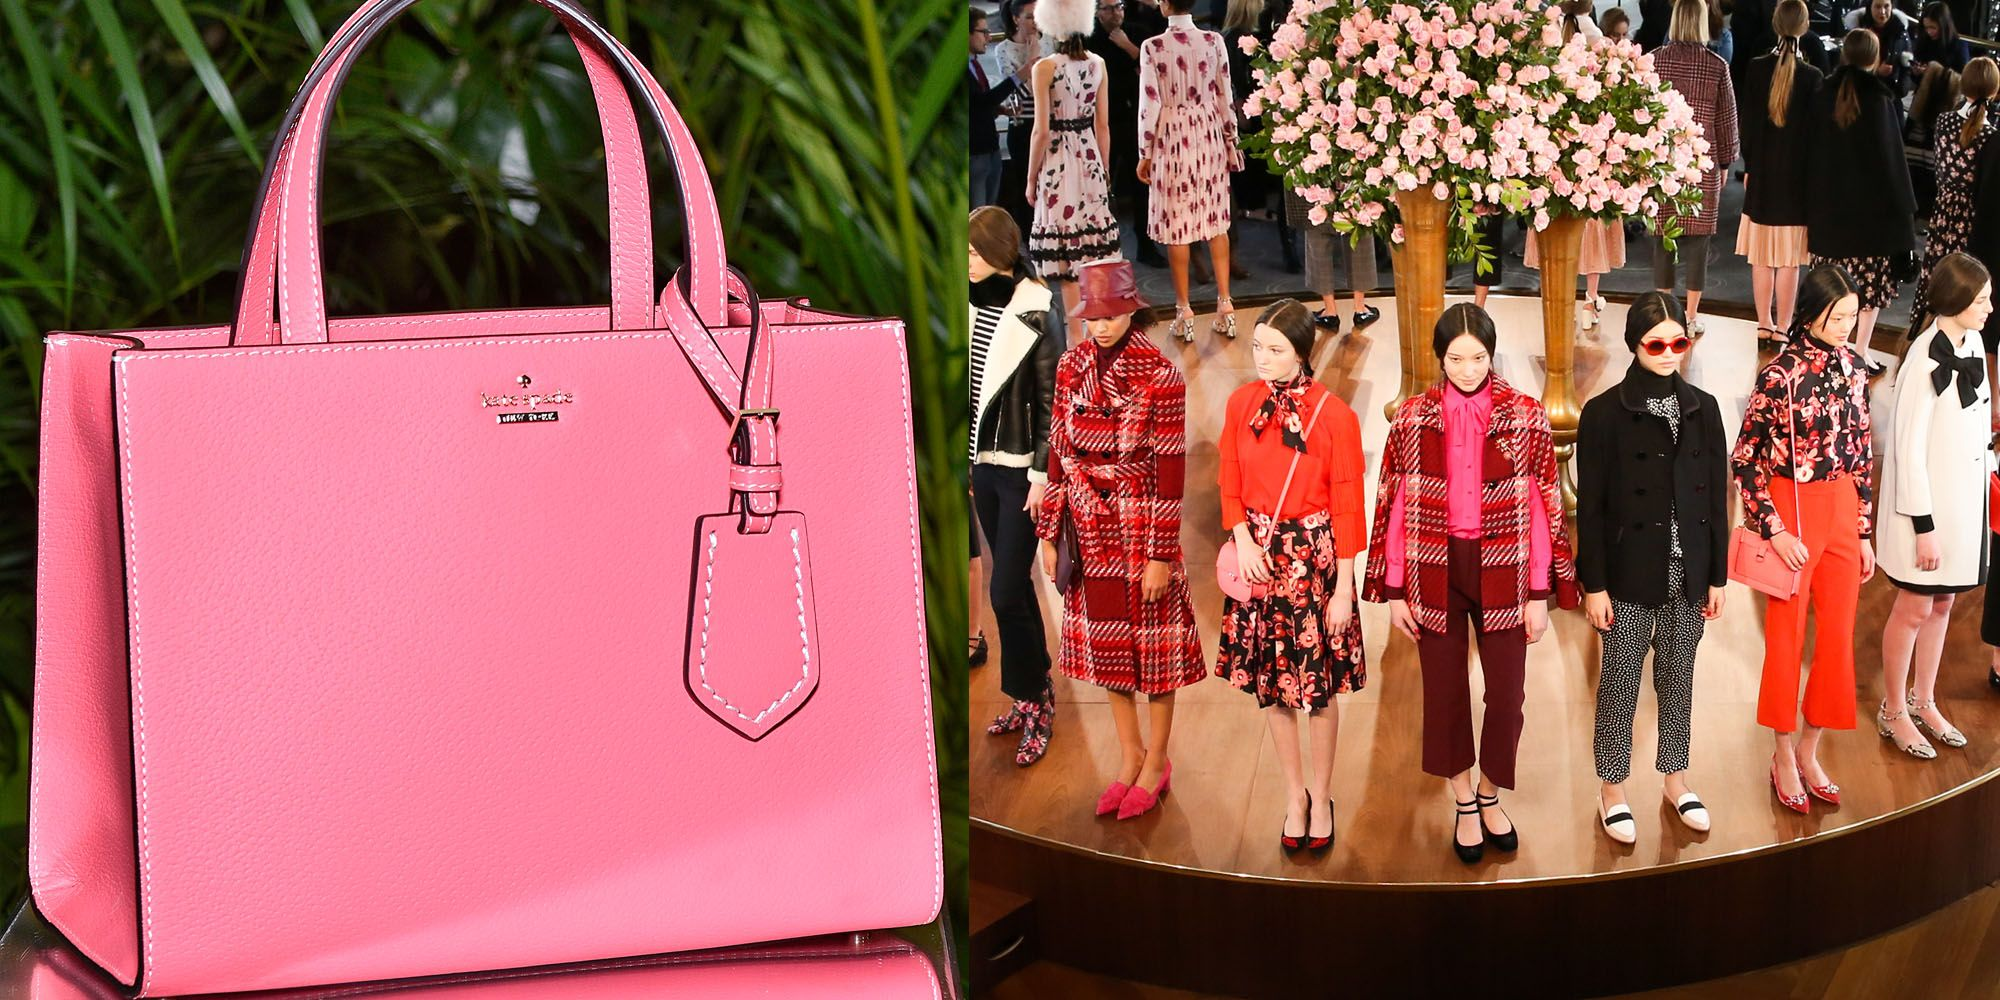 cf5289f82247 Kate Spade's Most Memorable Fashion Moments - Kate Spade Famous Designs